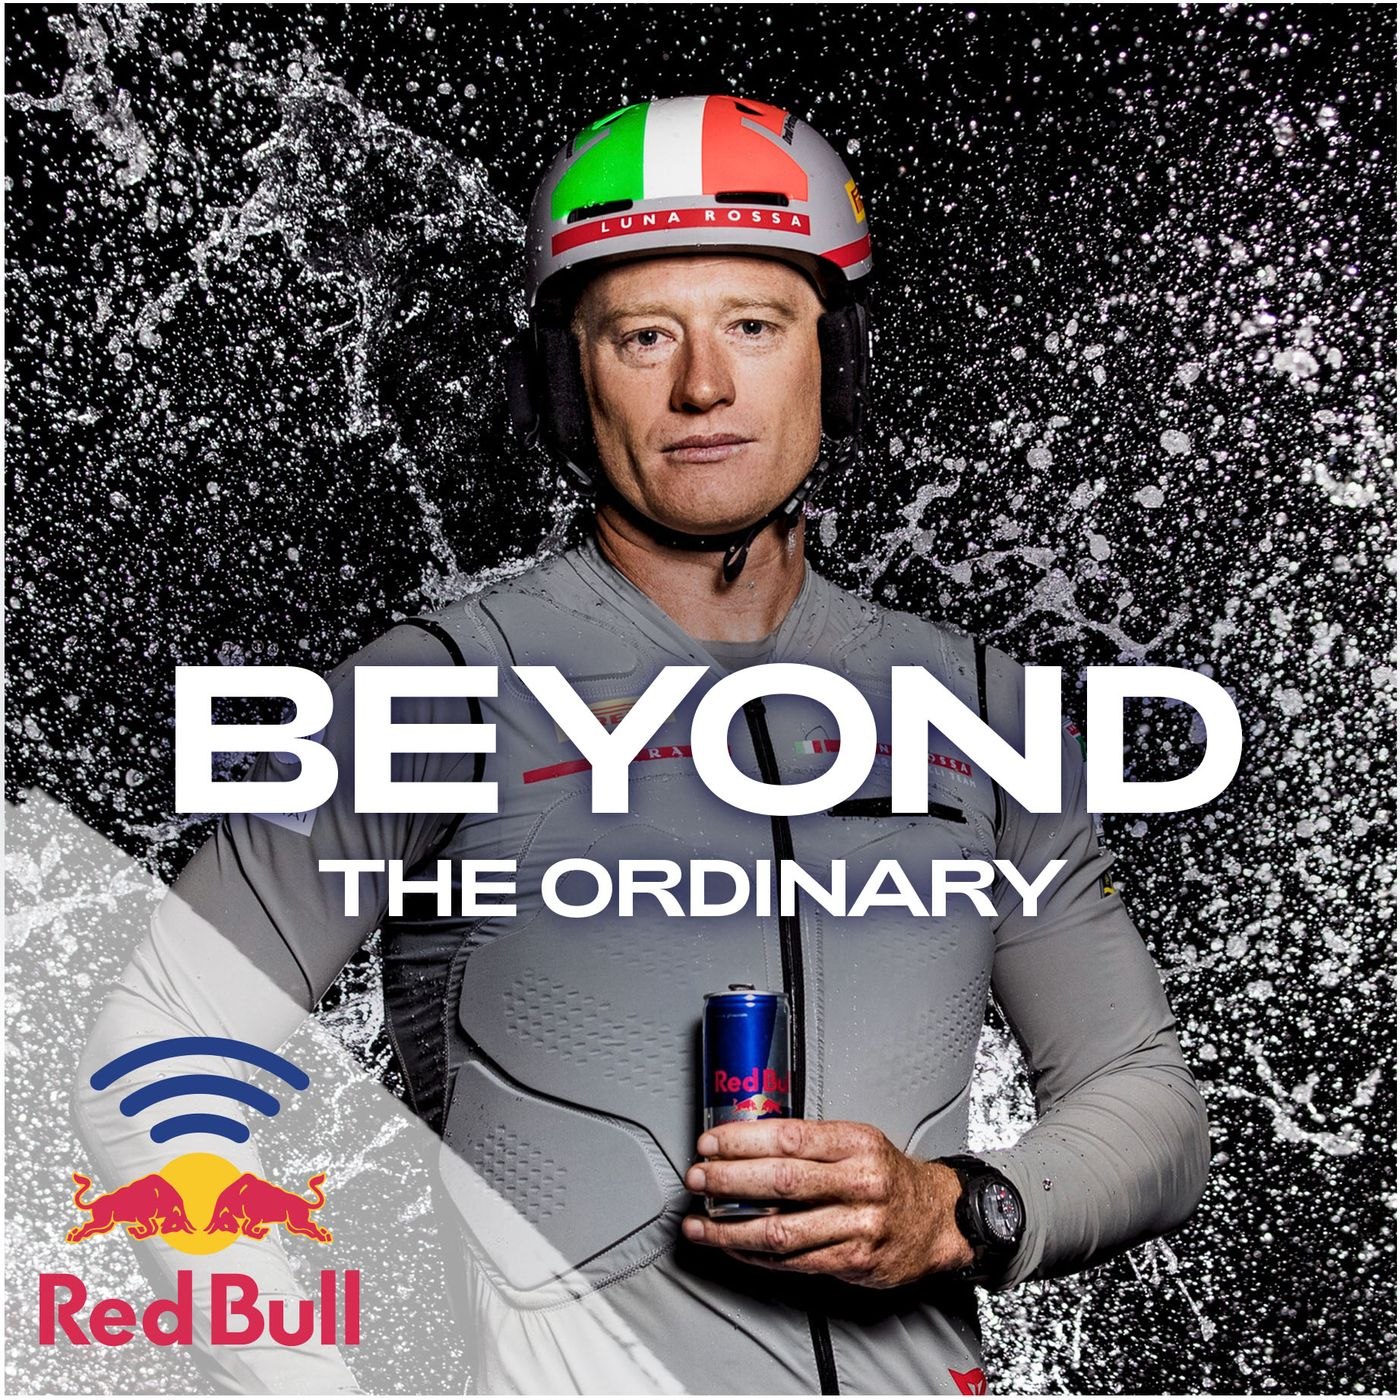 What it takes to sail a boat at 100kmph and win the world's oldest sporting trophy: Jimmy Spithill